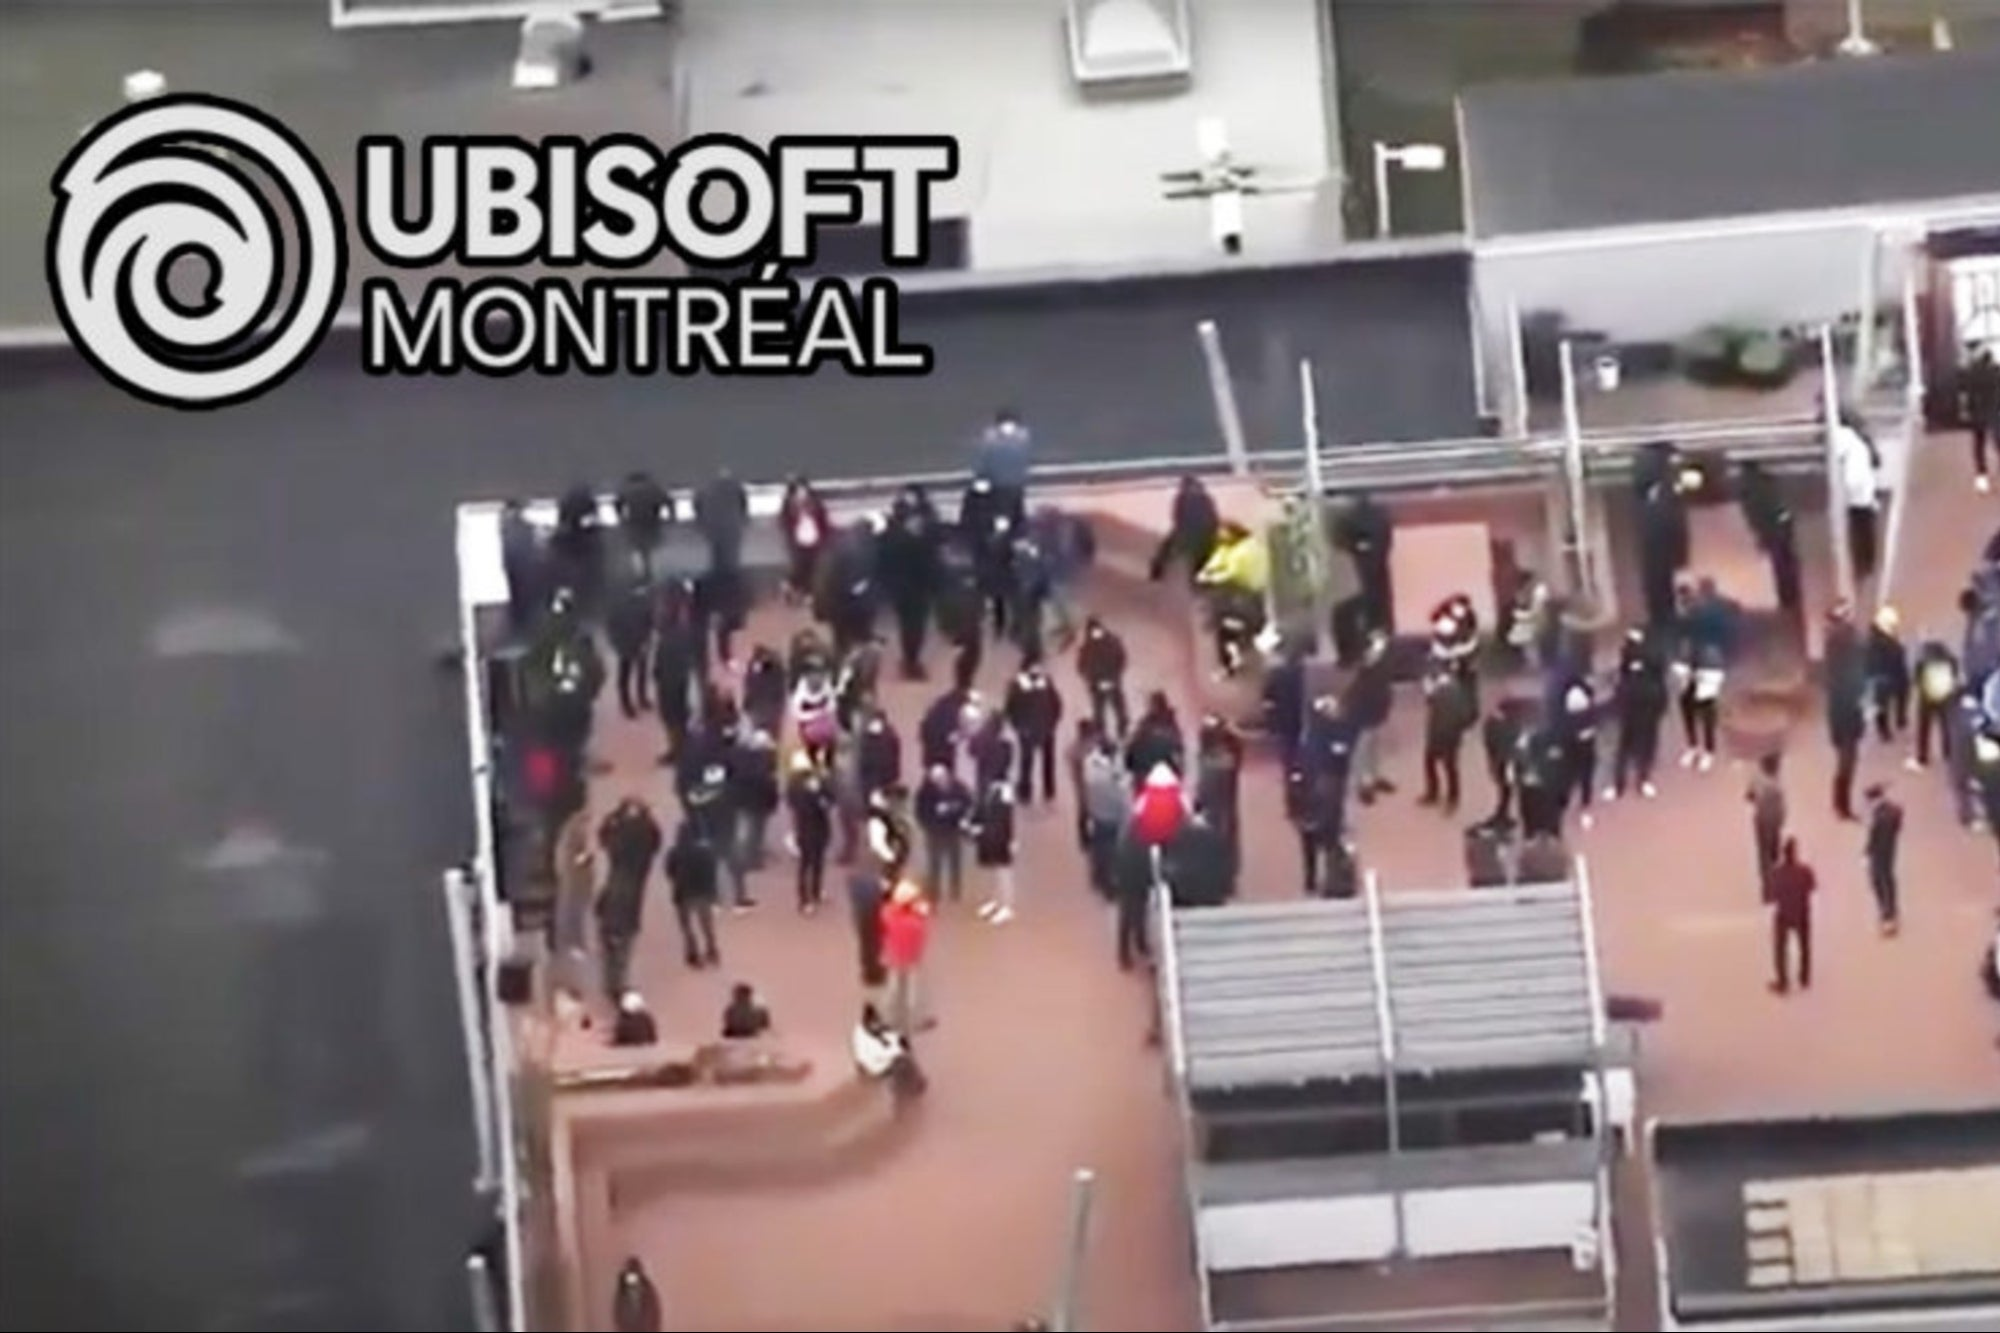 Hostage reported at Ubisoft offices in Montreal